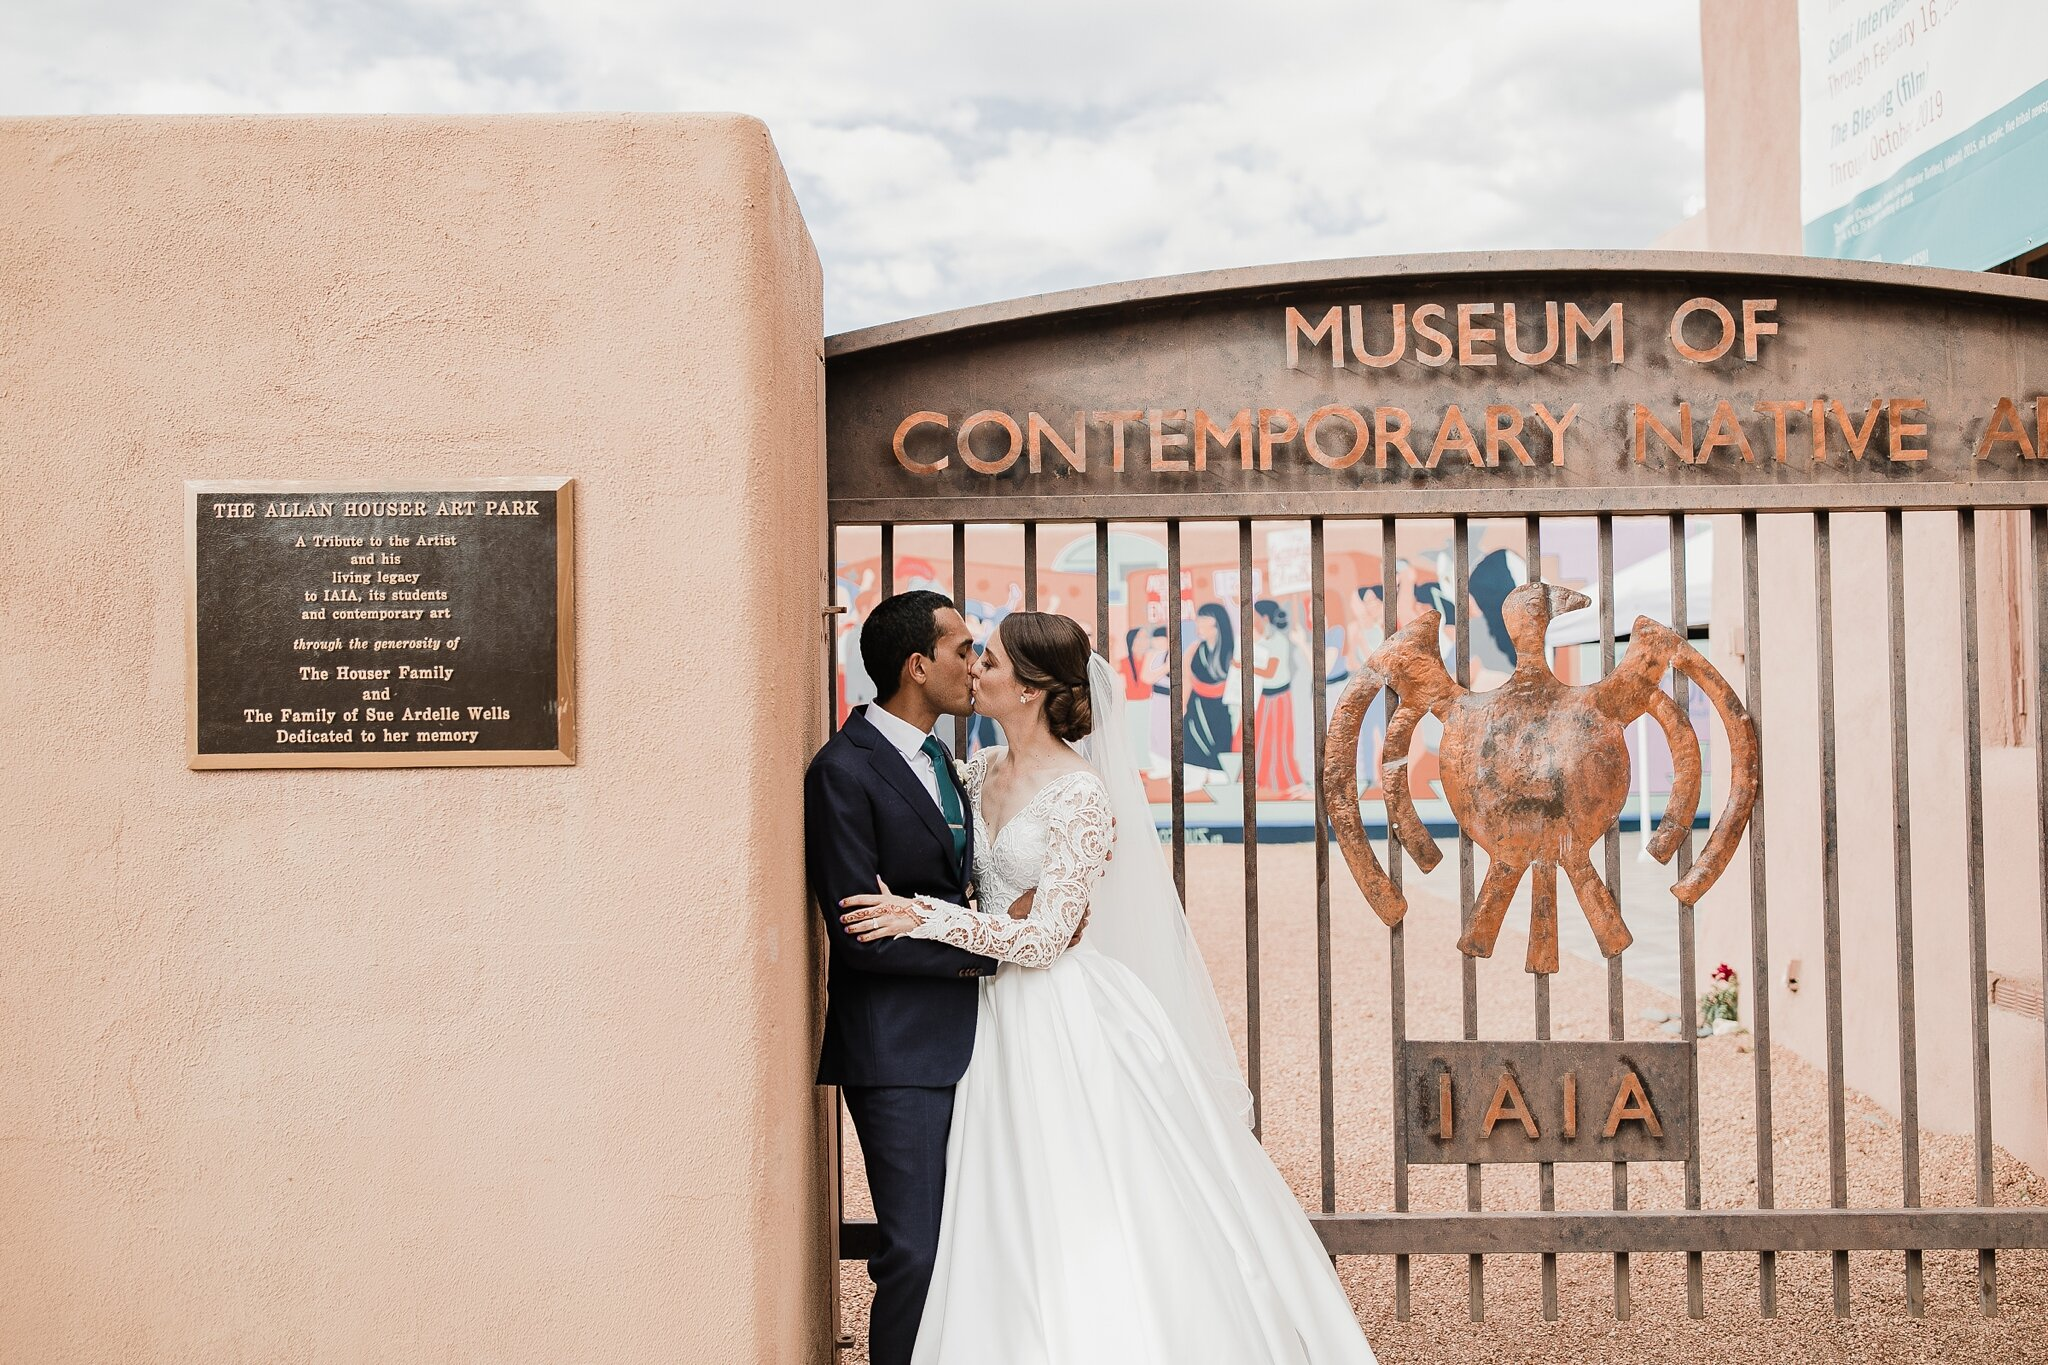 Alicia+lucia+photography+-+albuquerque+wedding+photographer+-+santa+fe+wedding+photography+-+new+mexico+wedding+photographer+-+new+mexico+wedding+-+hindu+wedding+-+catholic+wedding+-+multicultural+wedding+-+santa+fe+wedding_0065.jpg